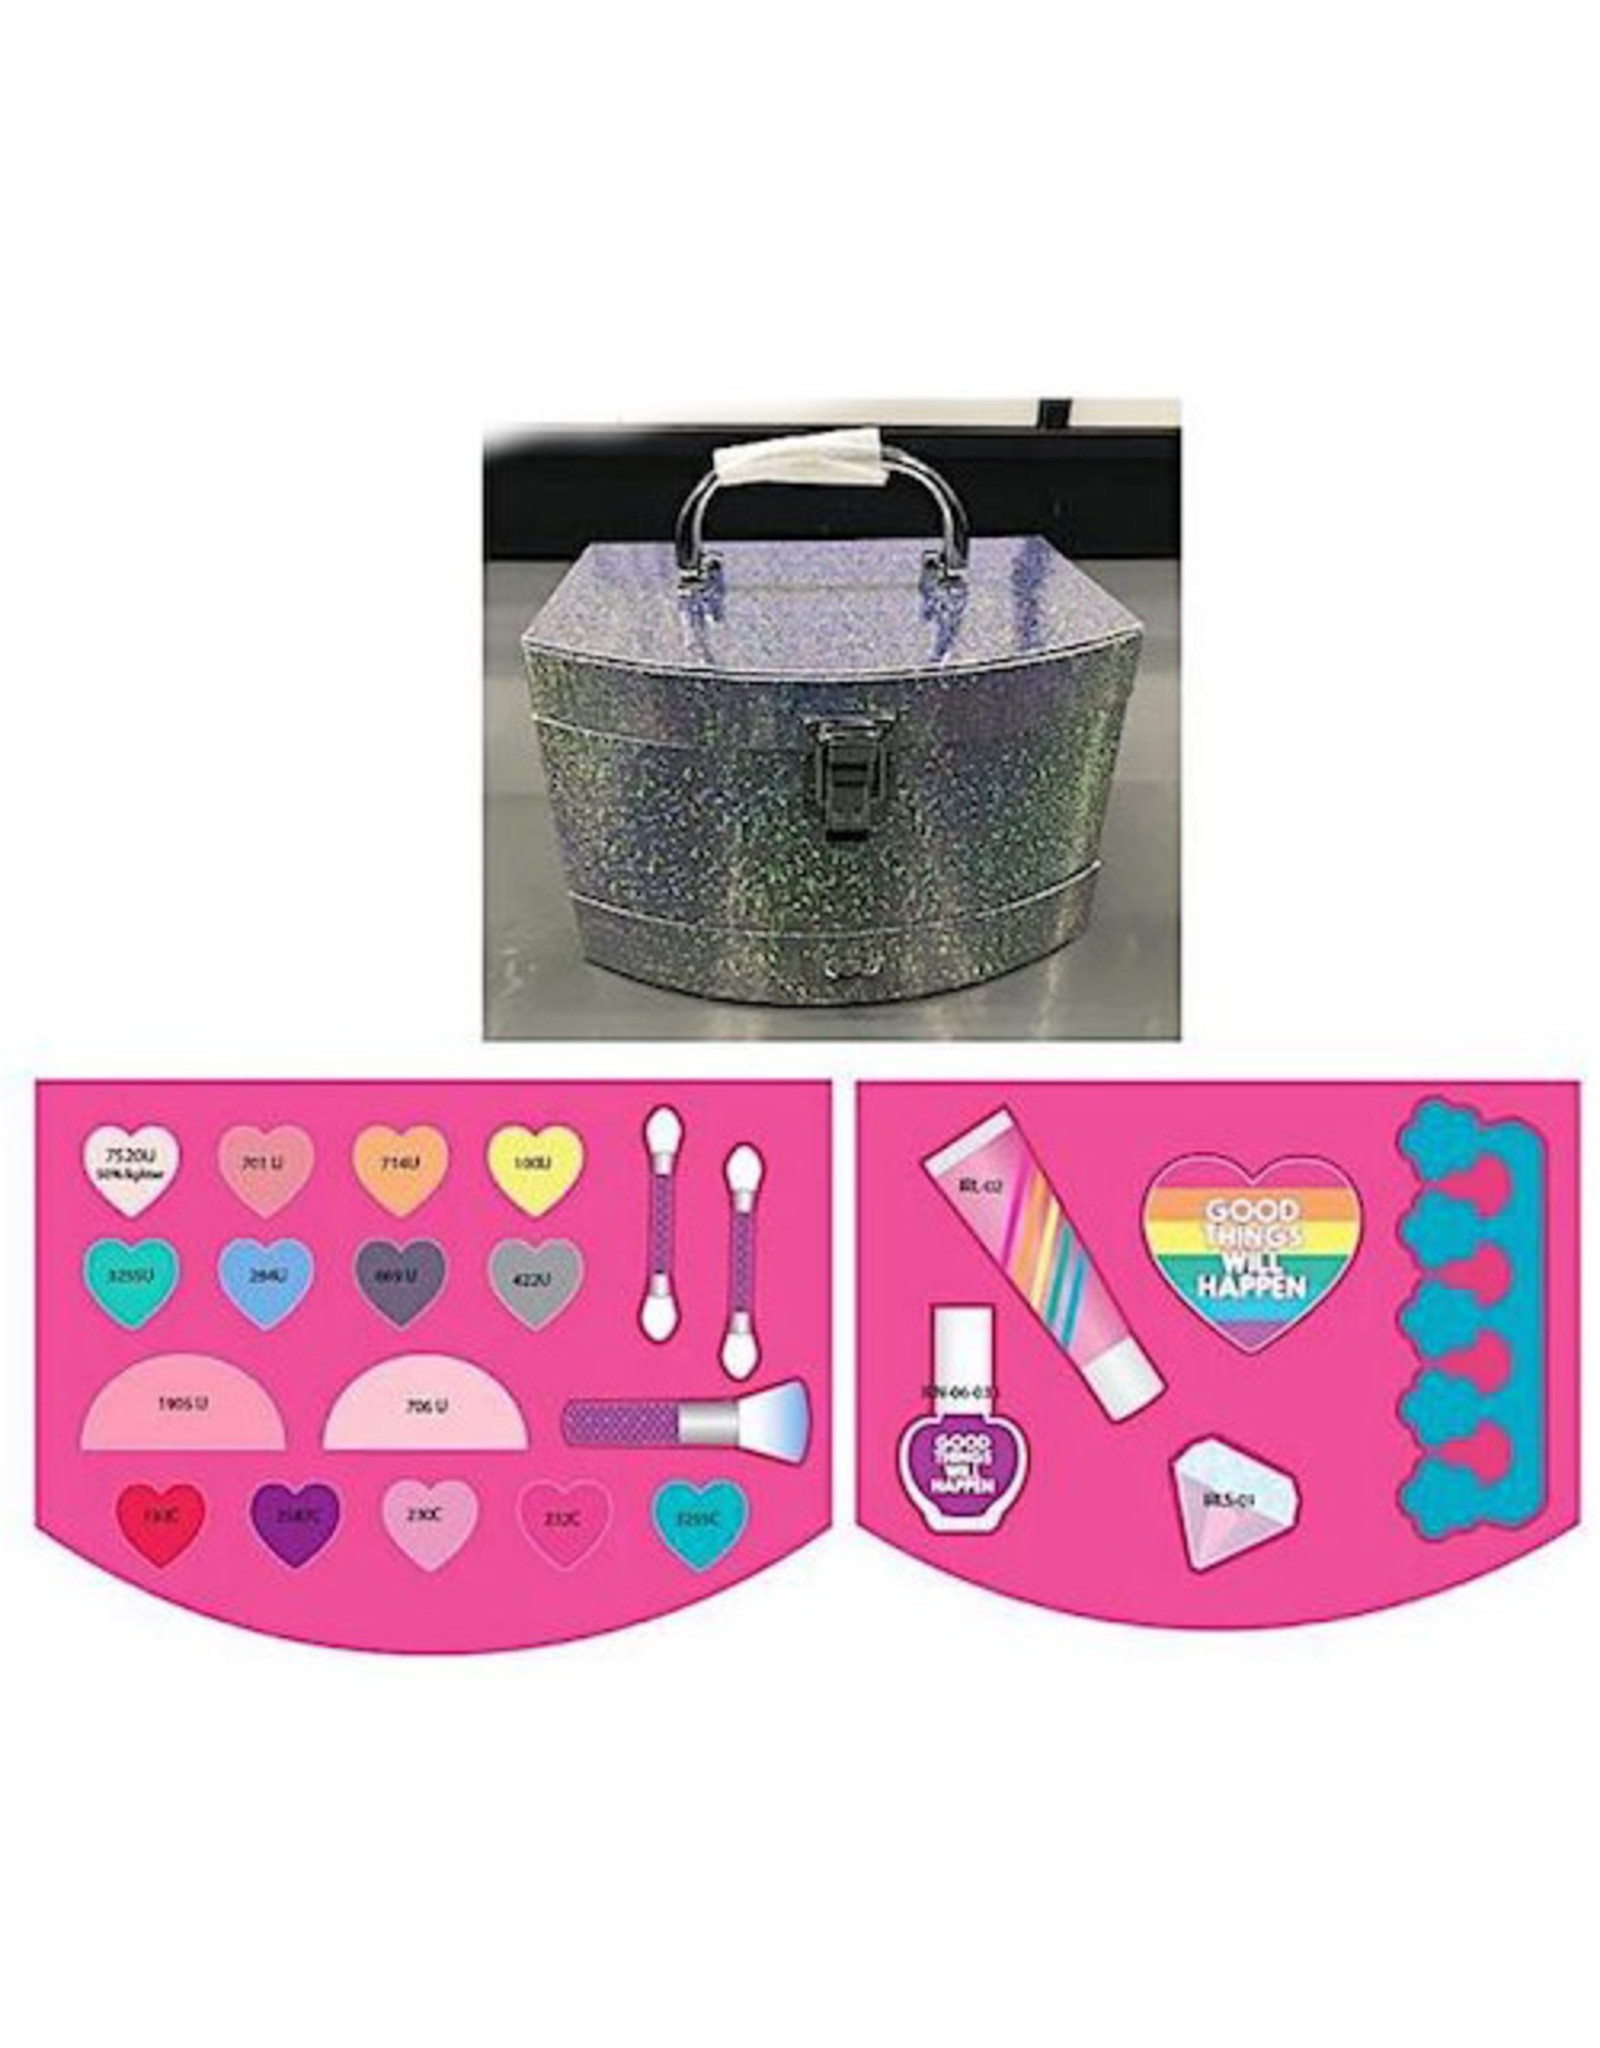 Make It Real Lets Sparkle Cosmetic Case